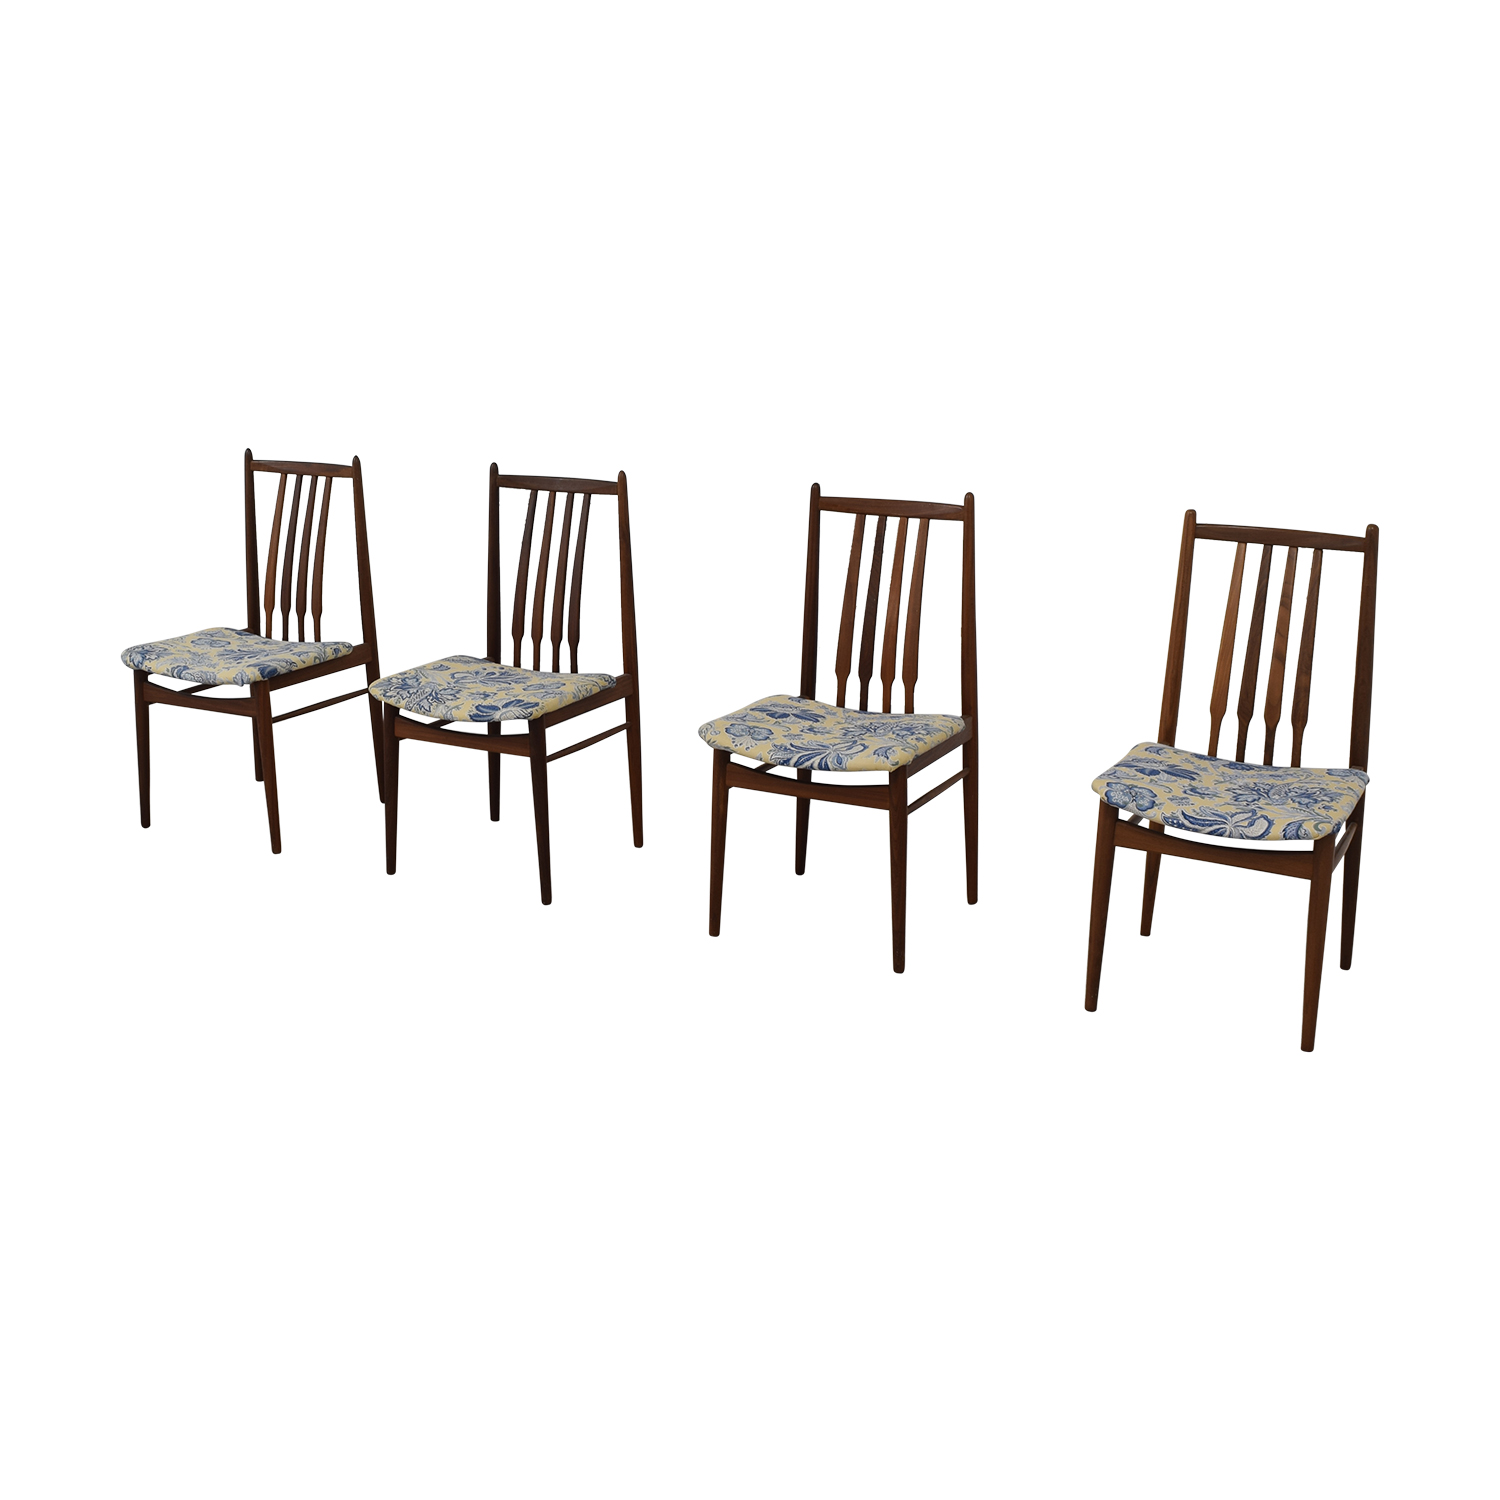 Scandinavian Wooden Chairs nj